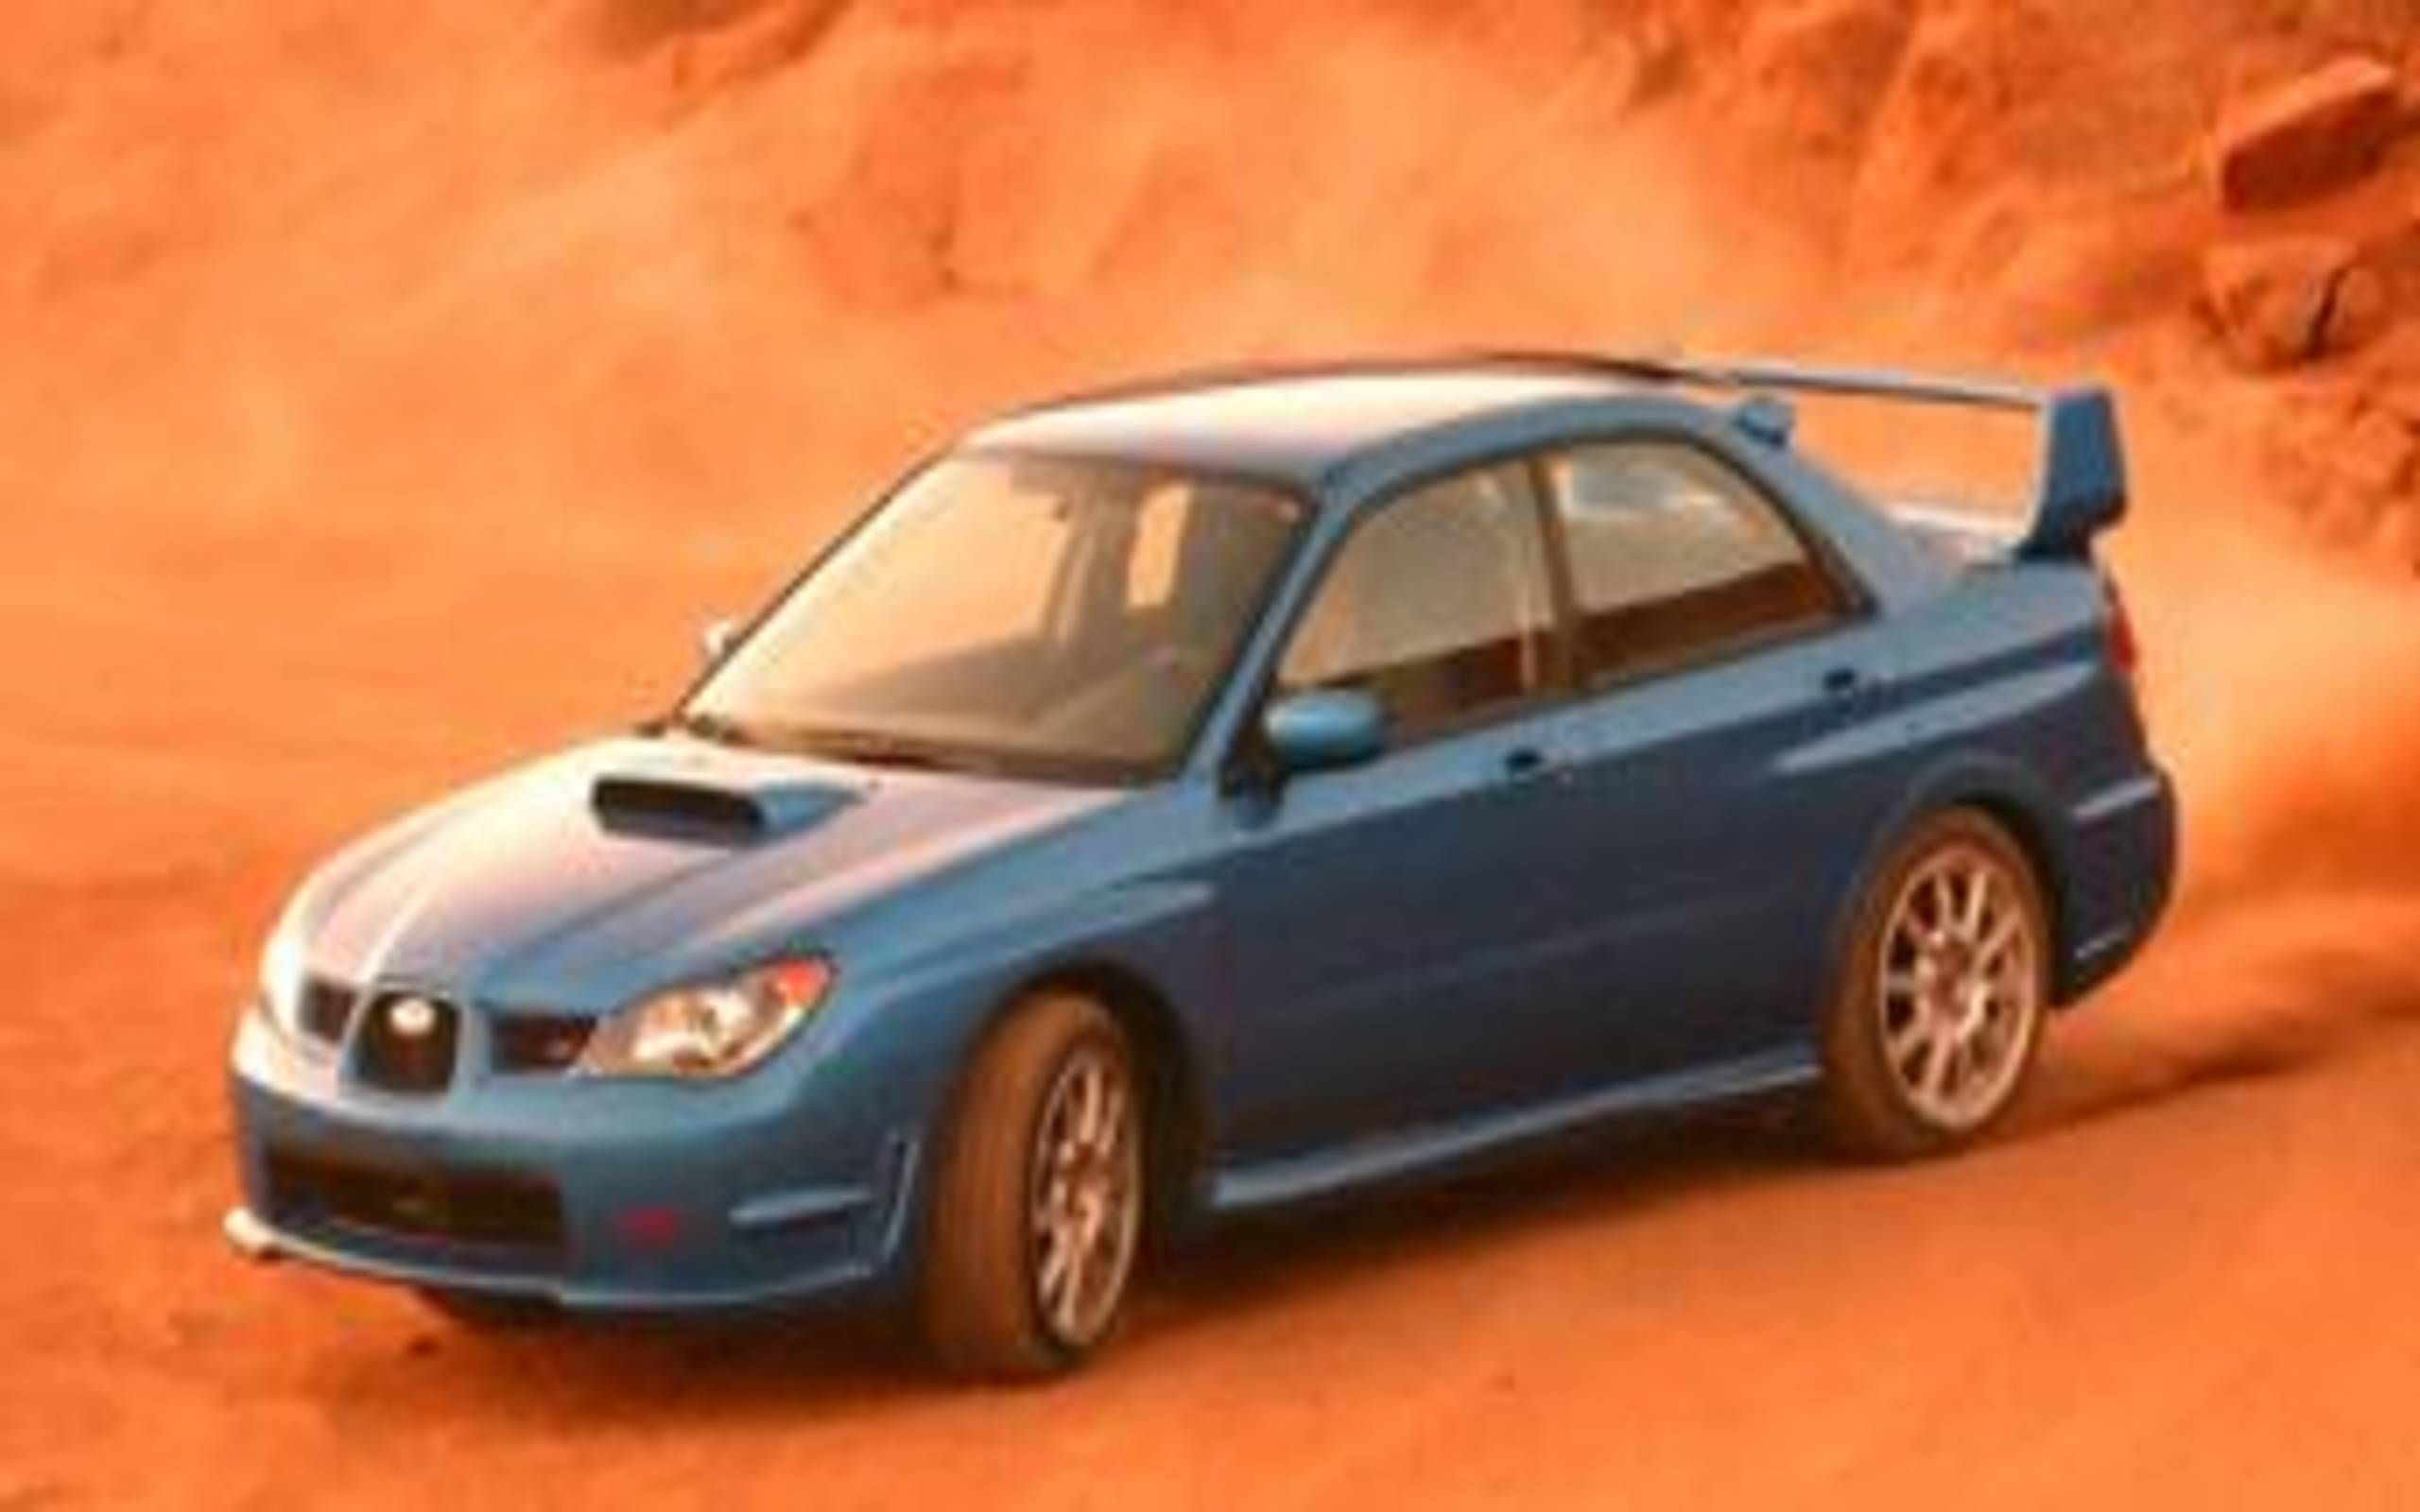 2006 Subaru Impreza Wrx Sti Subaru S Cult Car Shines On